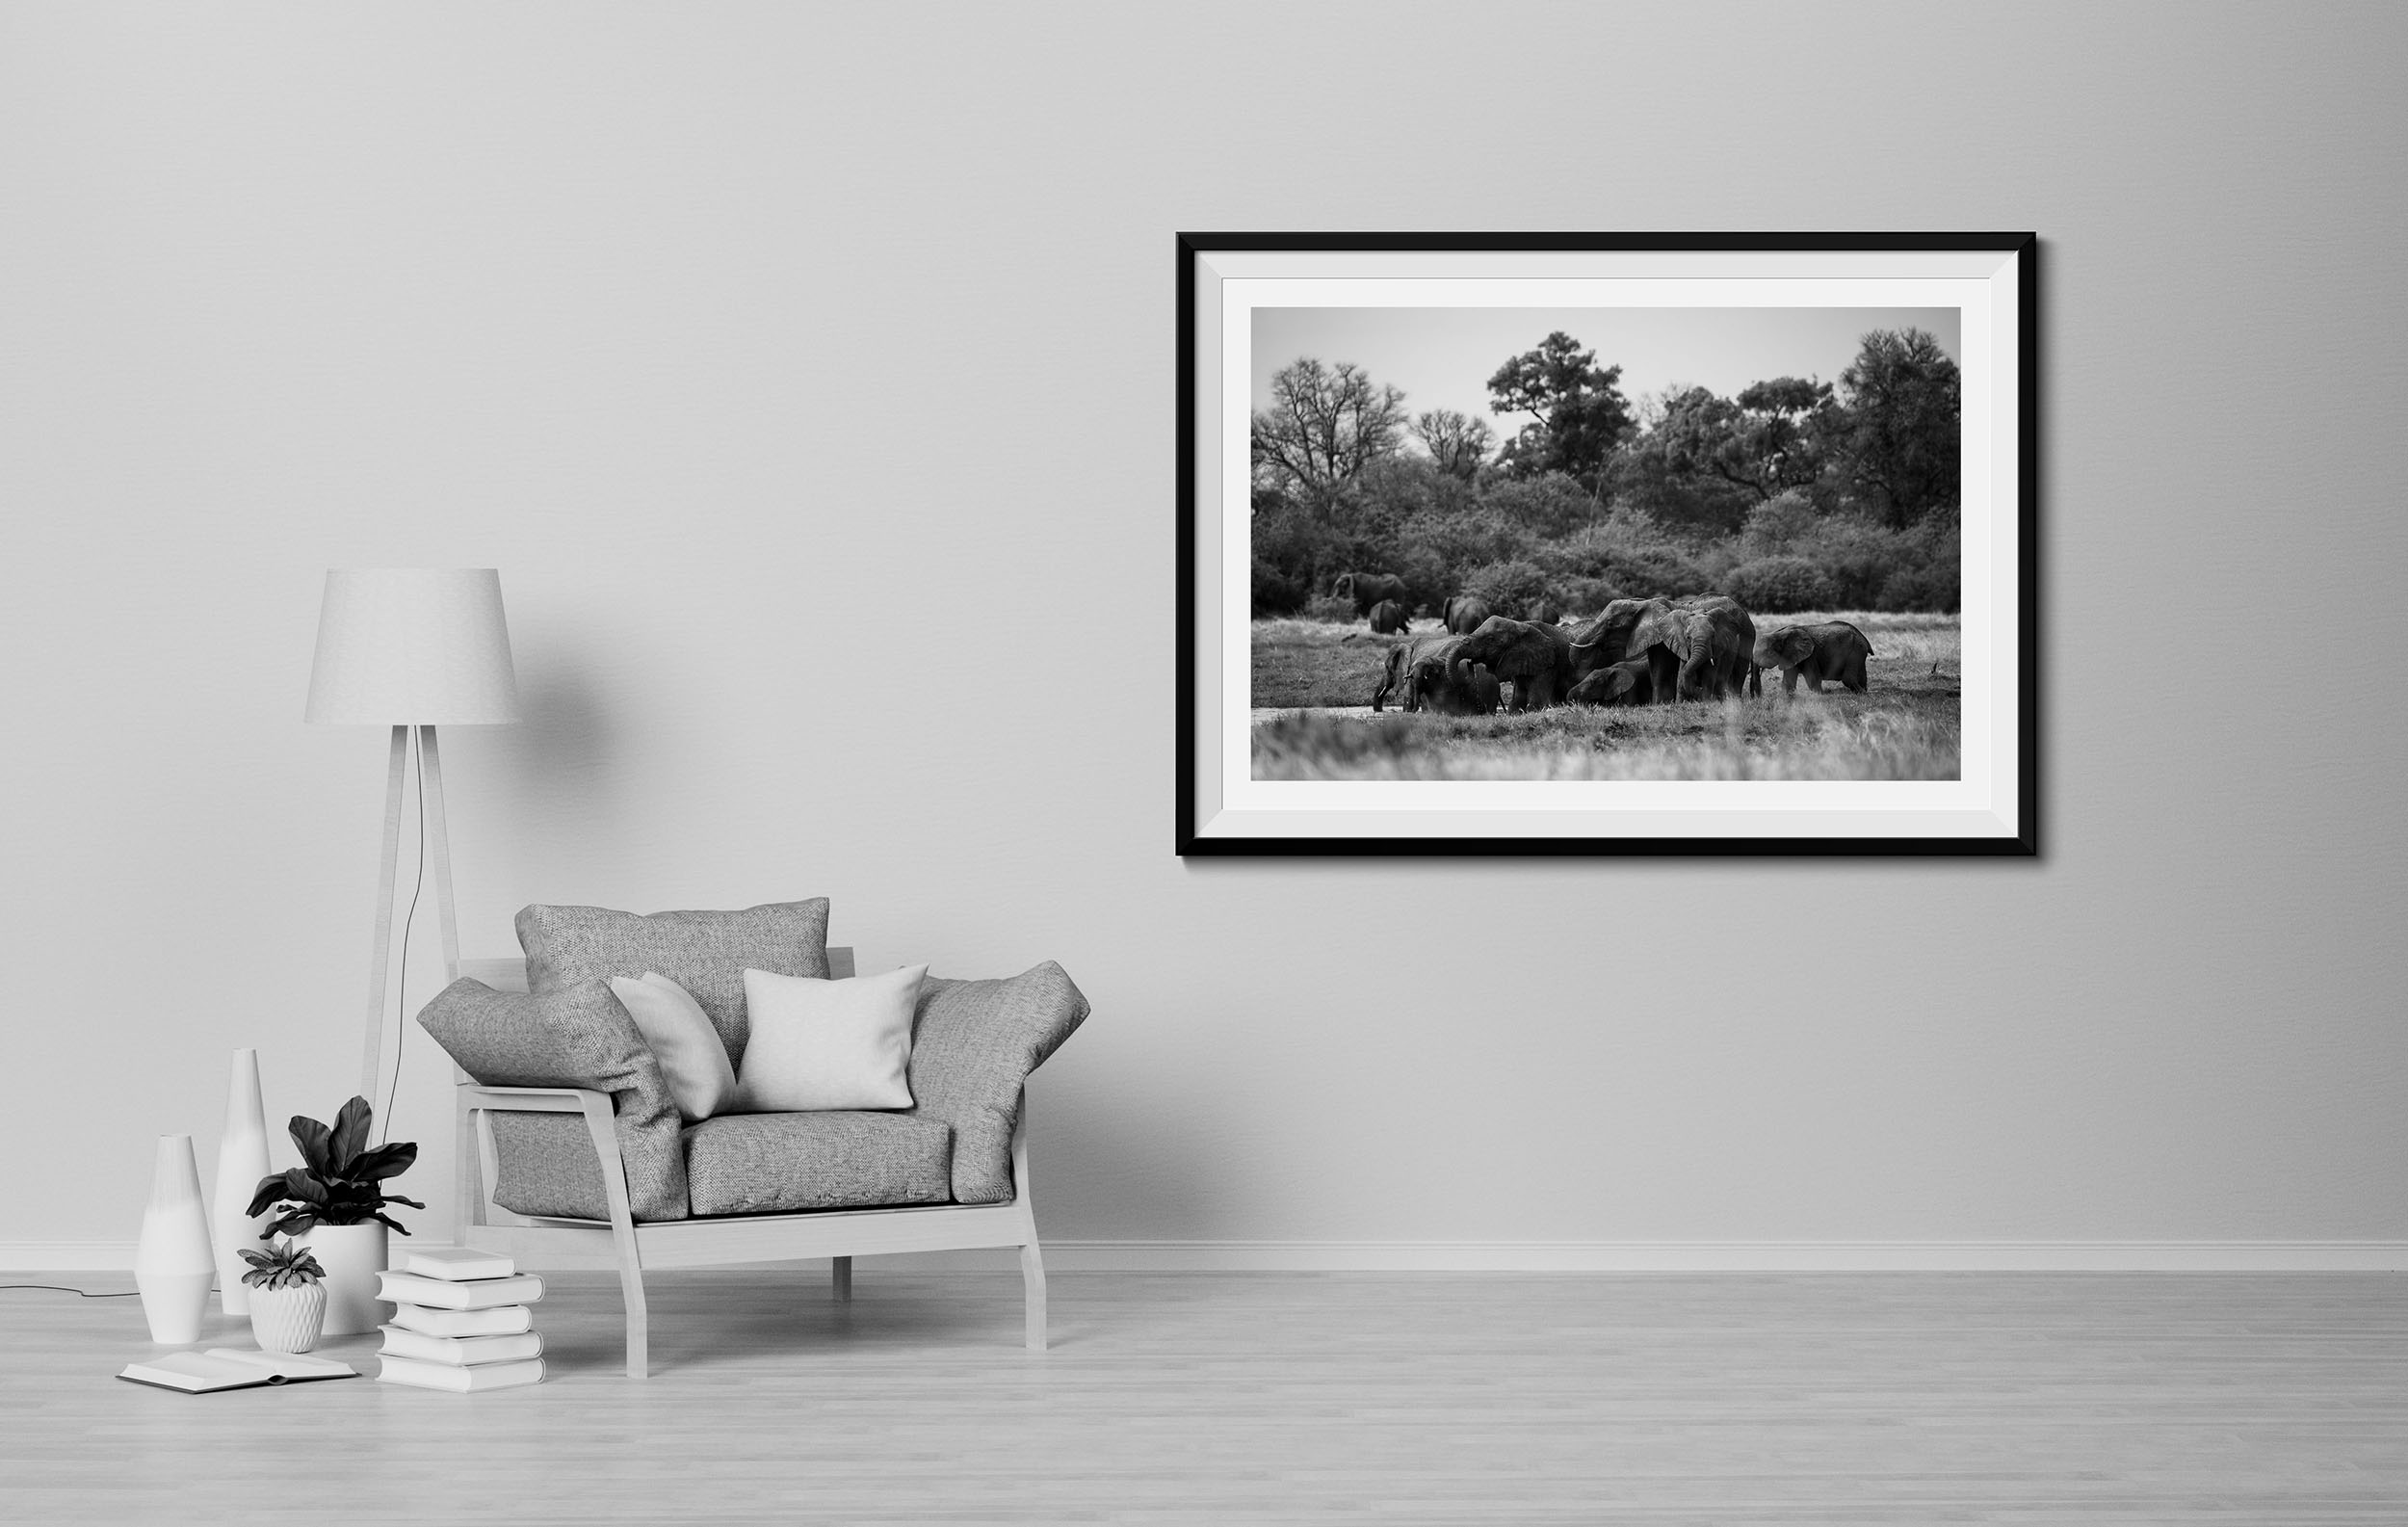 Elephants at Waterhole - Fine Art Photography Print